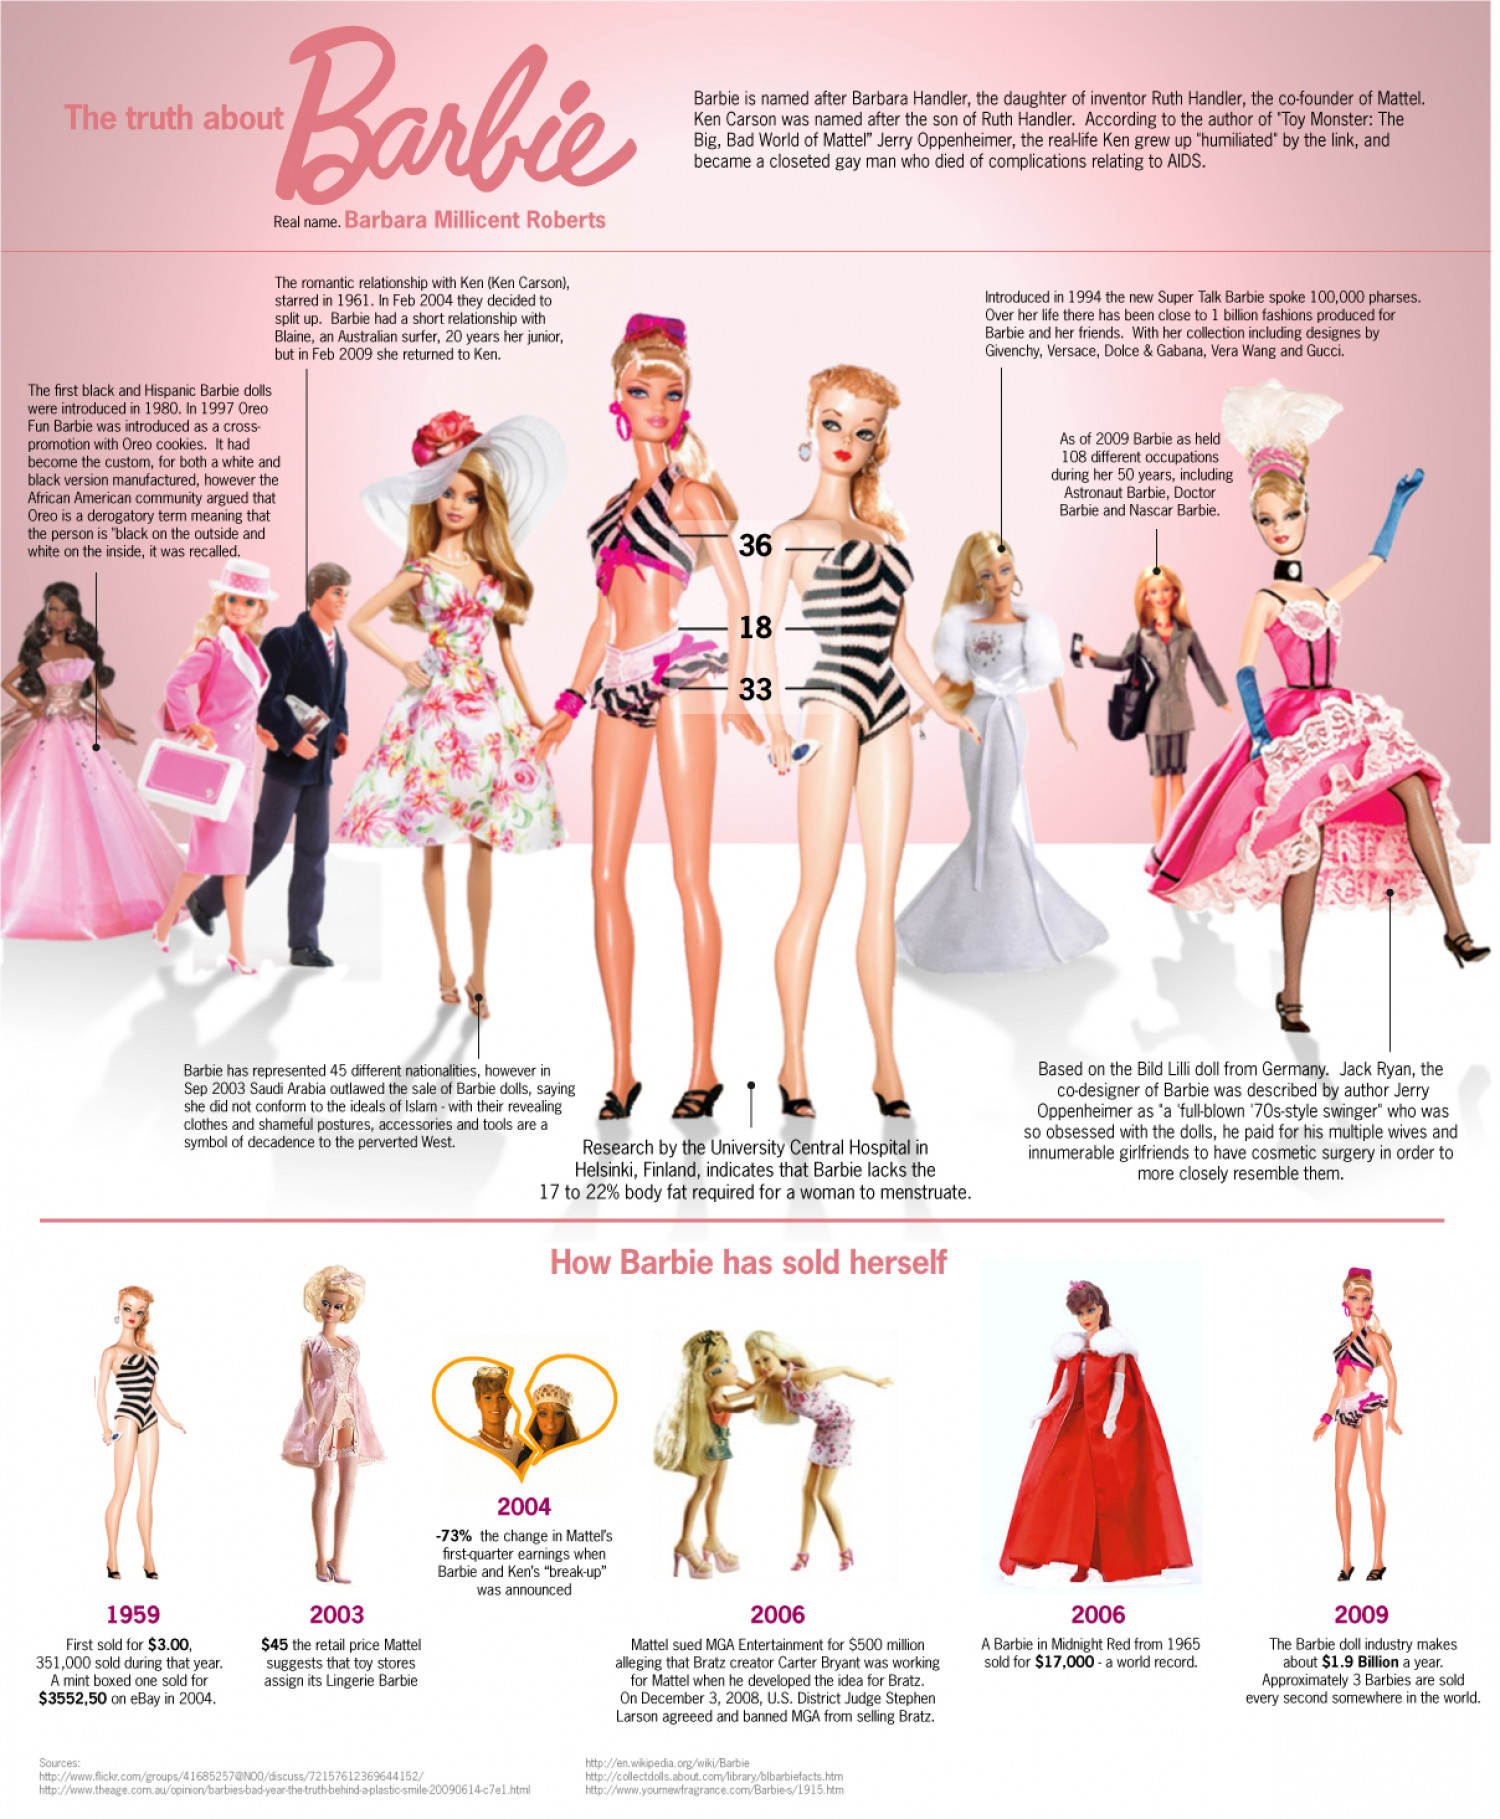 The Truth About Barbie Infographic